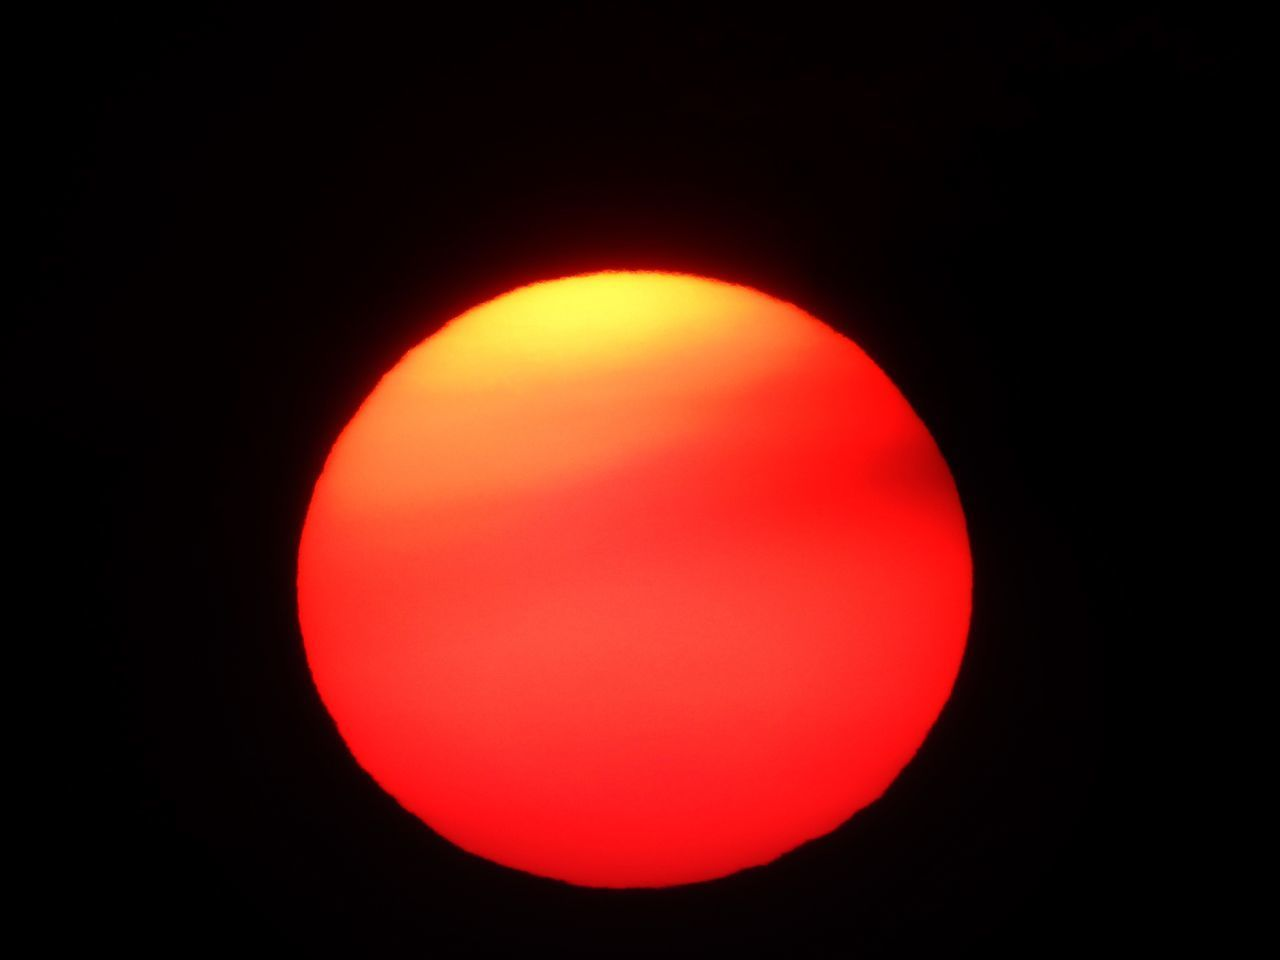 Circle Sun Red No People Beauty In Nature Scenics Nature Astronomy Outdoors Moon Illuminated Space Sky Close-up Black Background